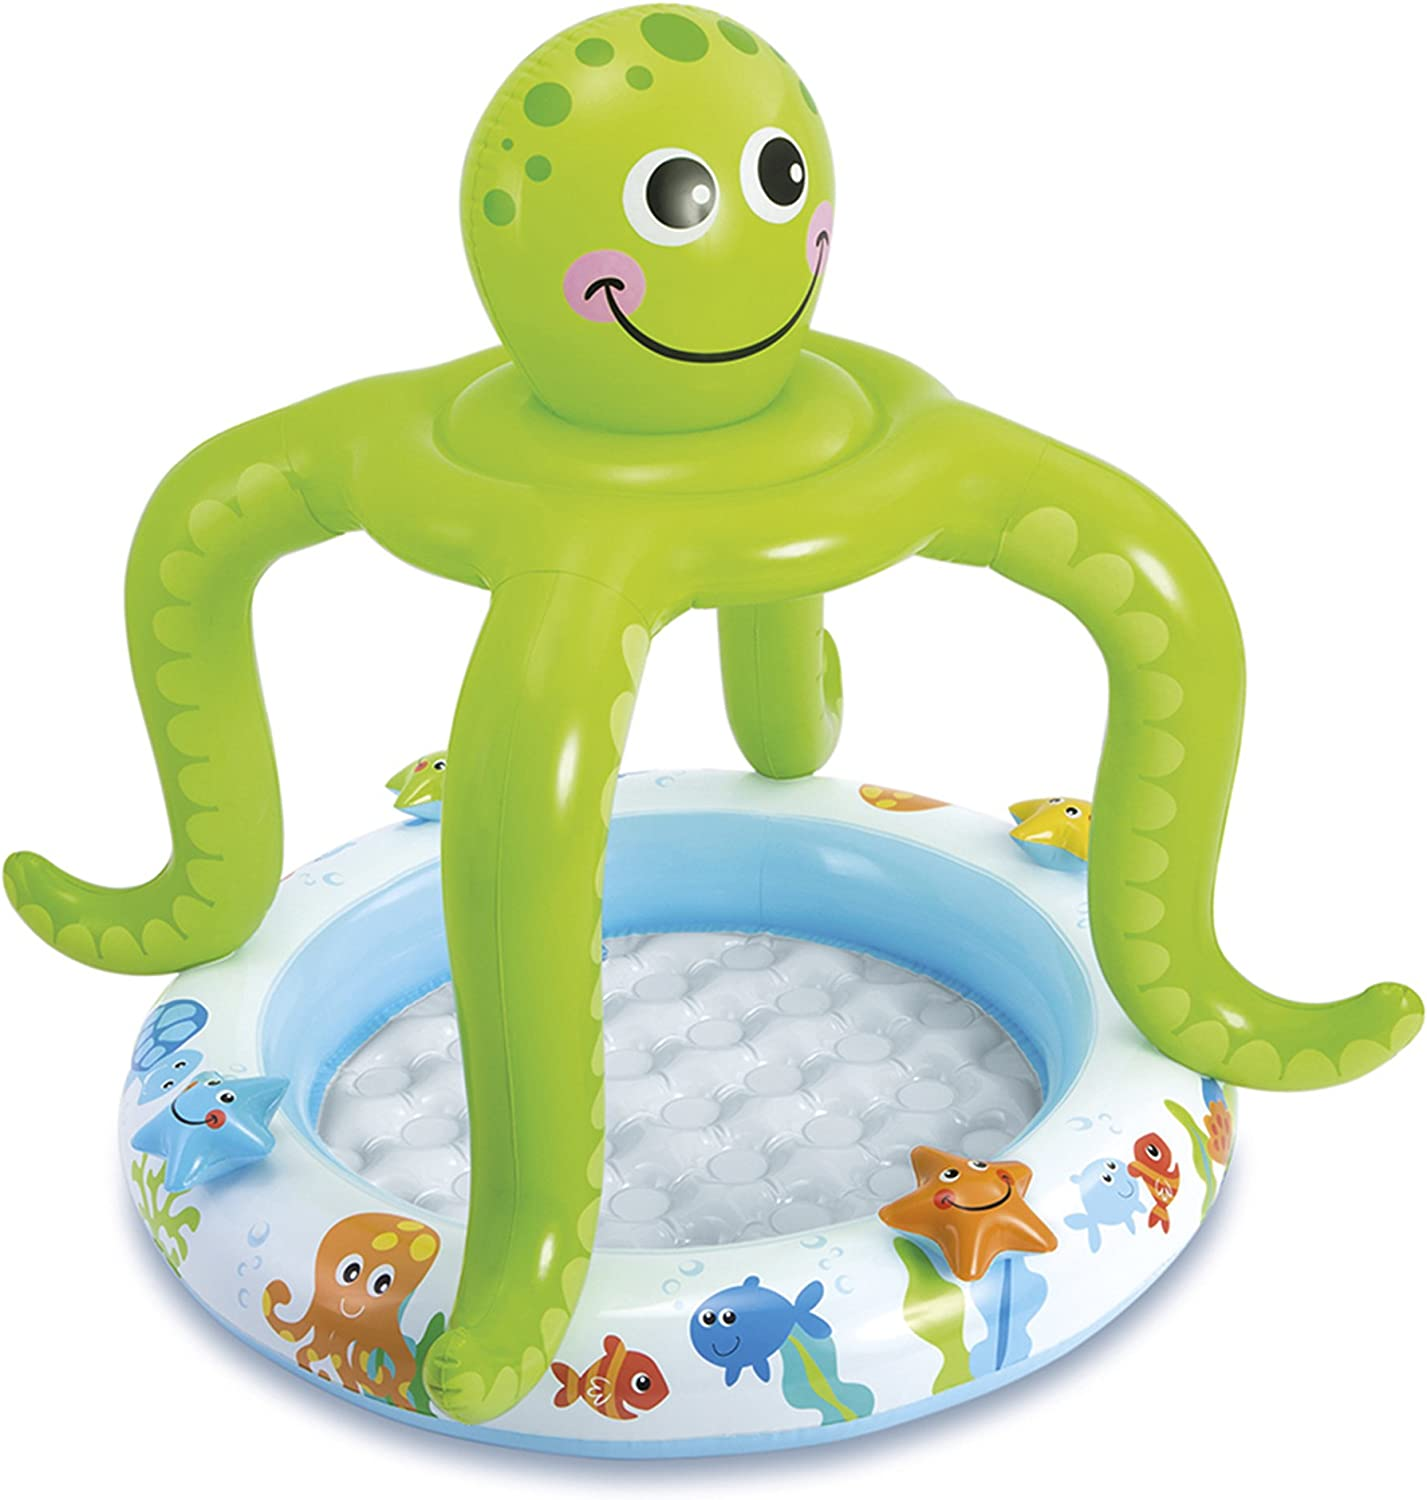 New Orleans Mall Siva Max 65% OFF Toys Toys227971 Smiling Octopus Pool Shade Baby Multi